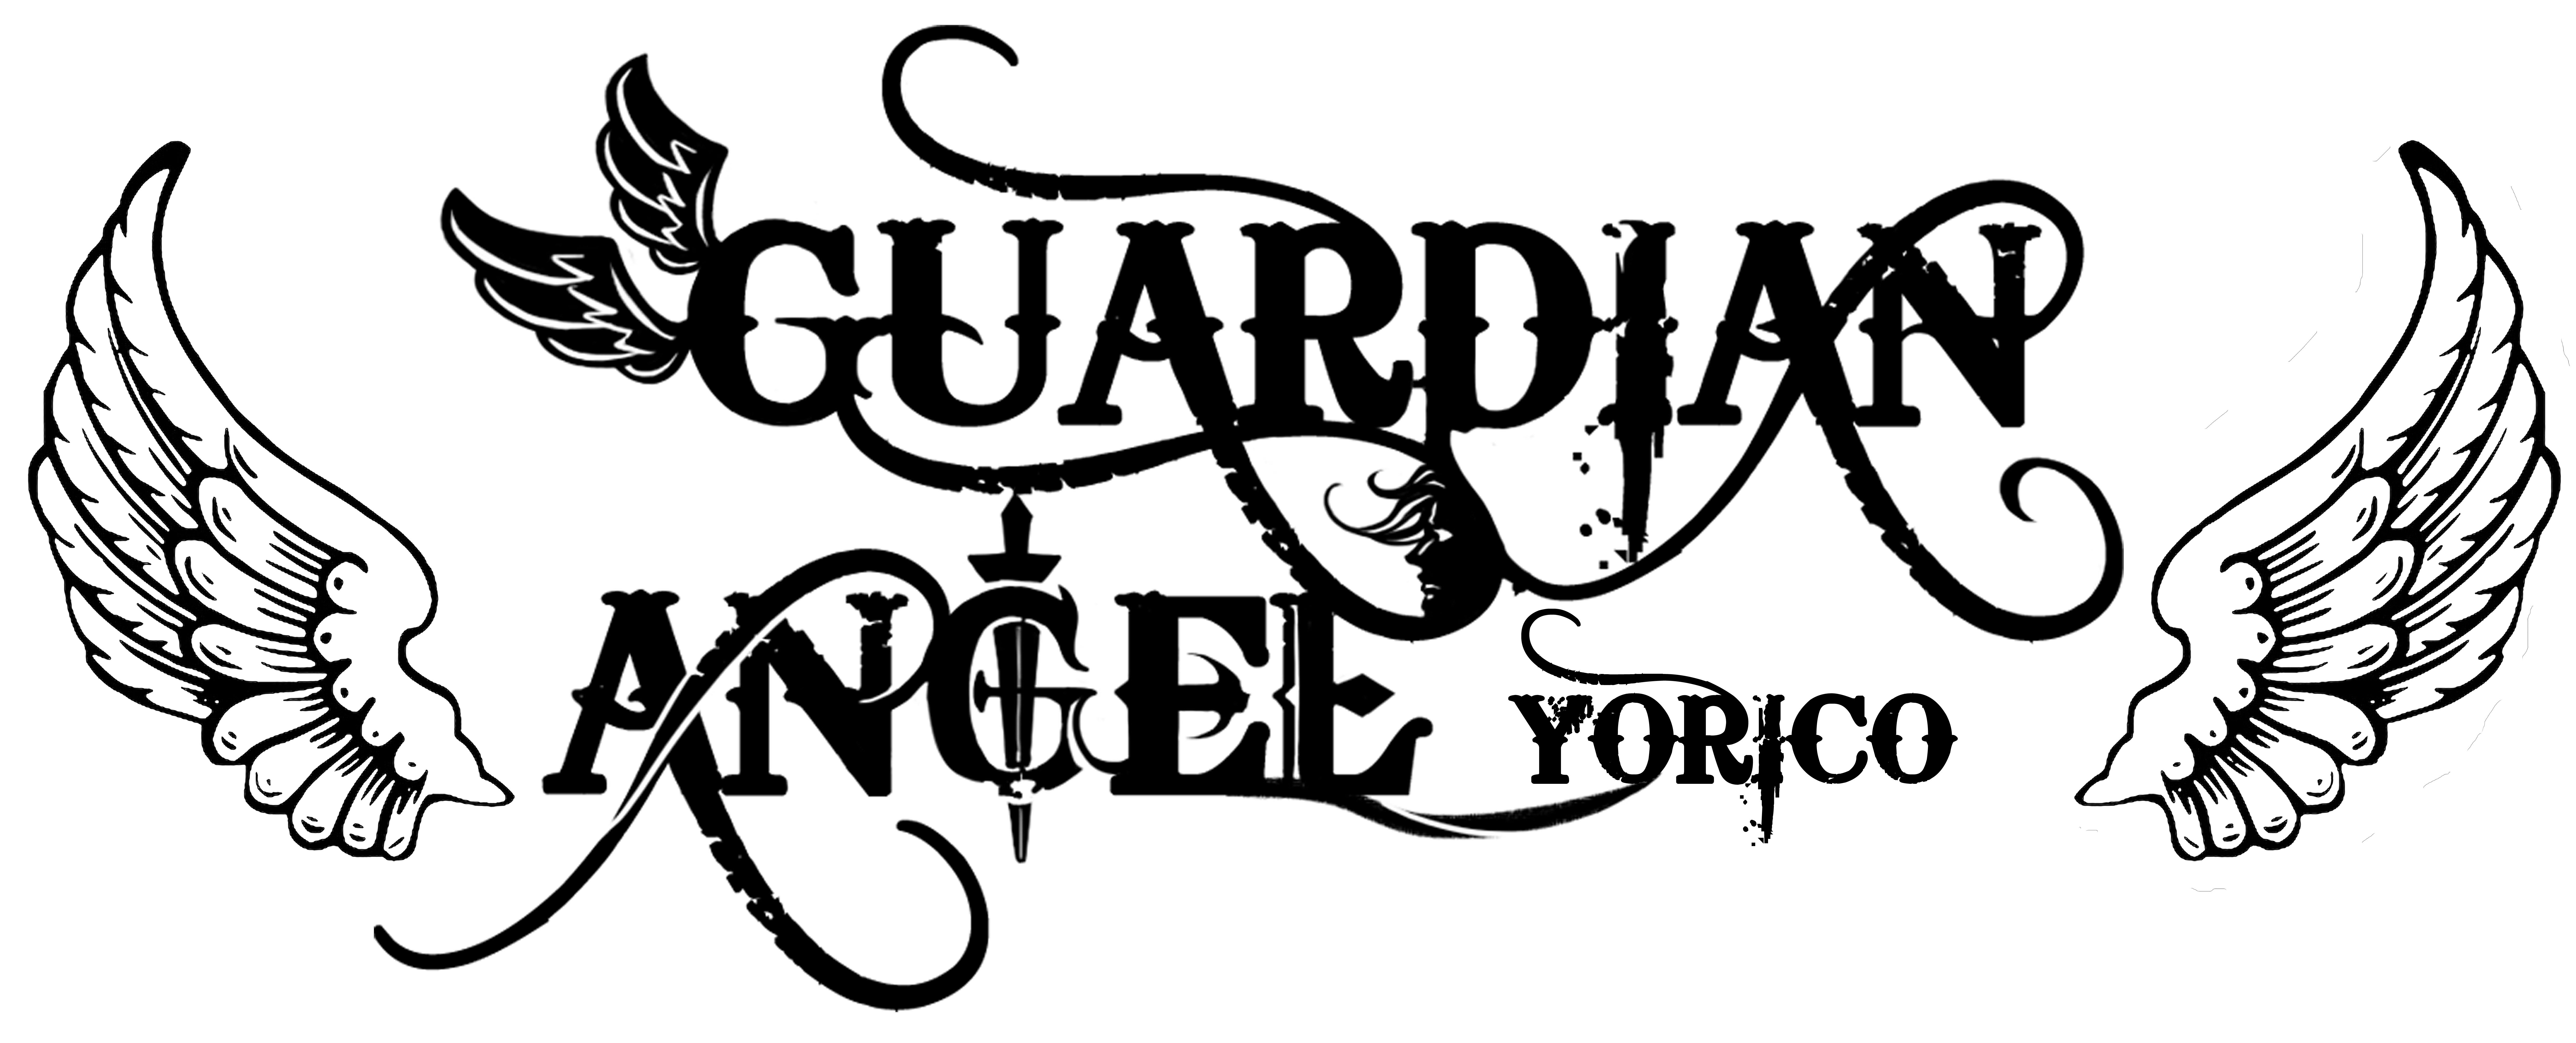 GUARDIAN ANGELS ツアーグッズ